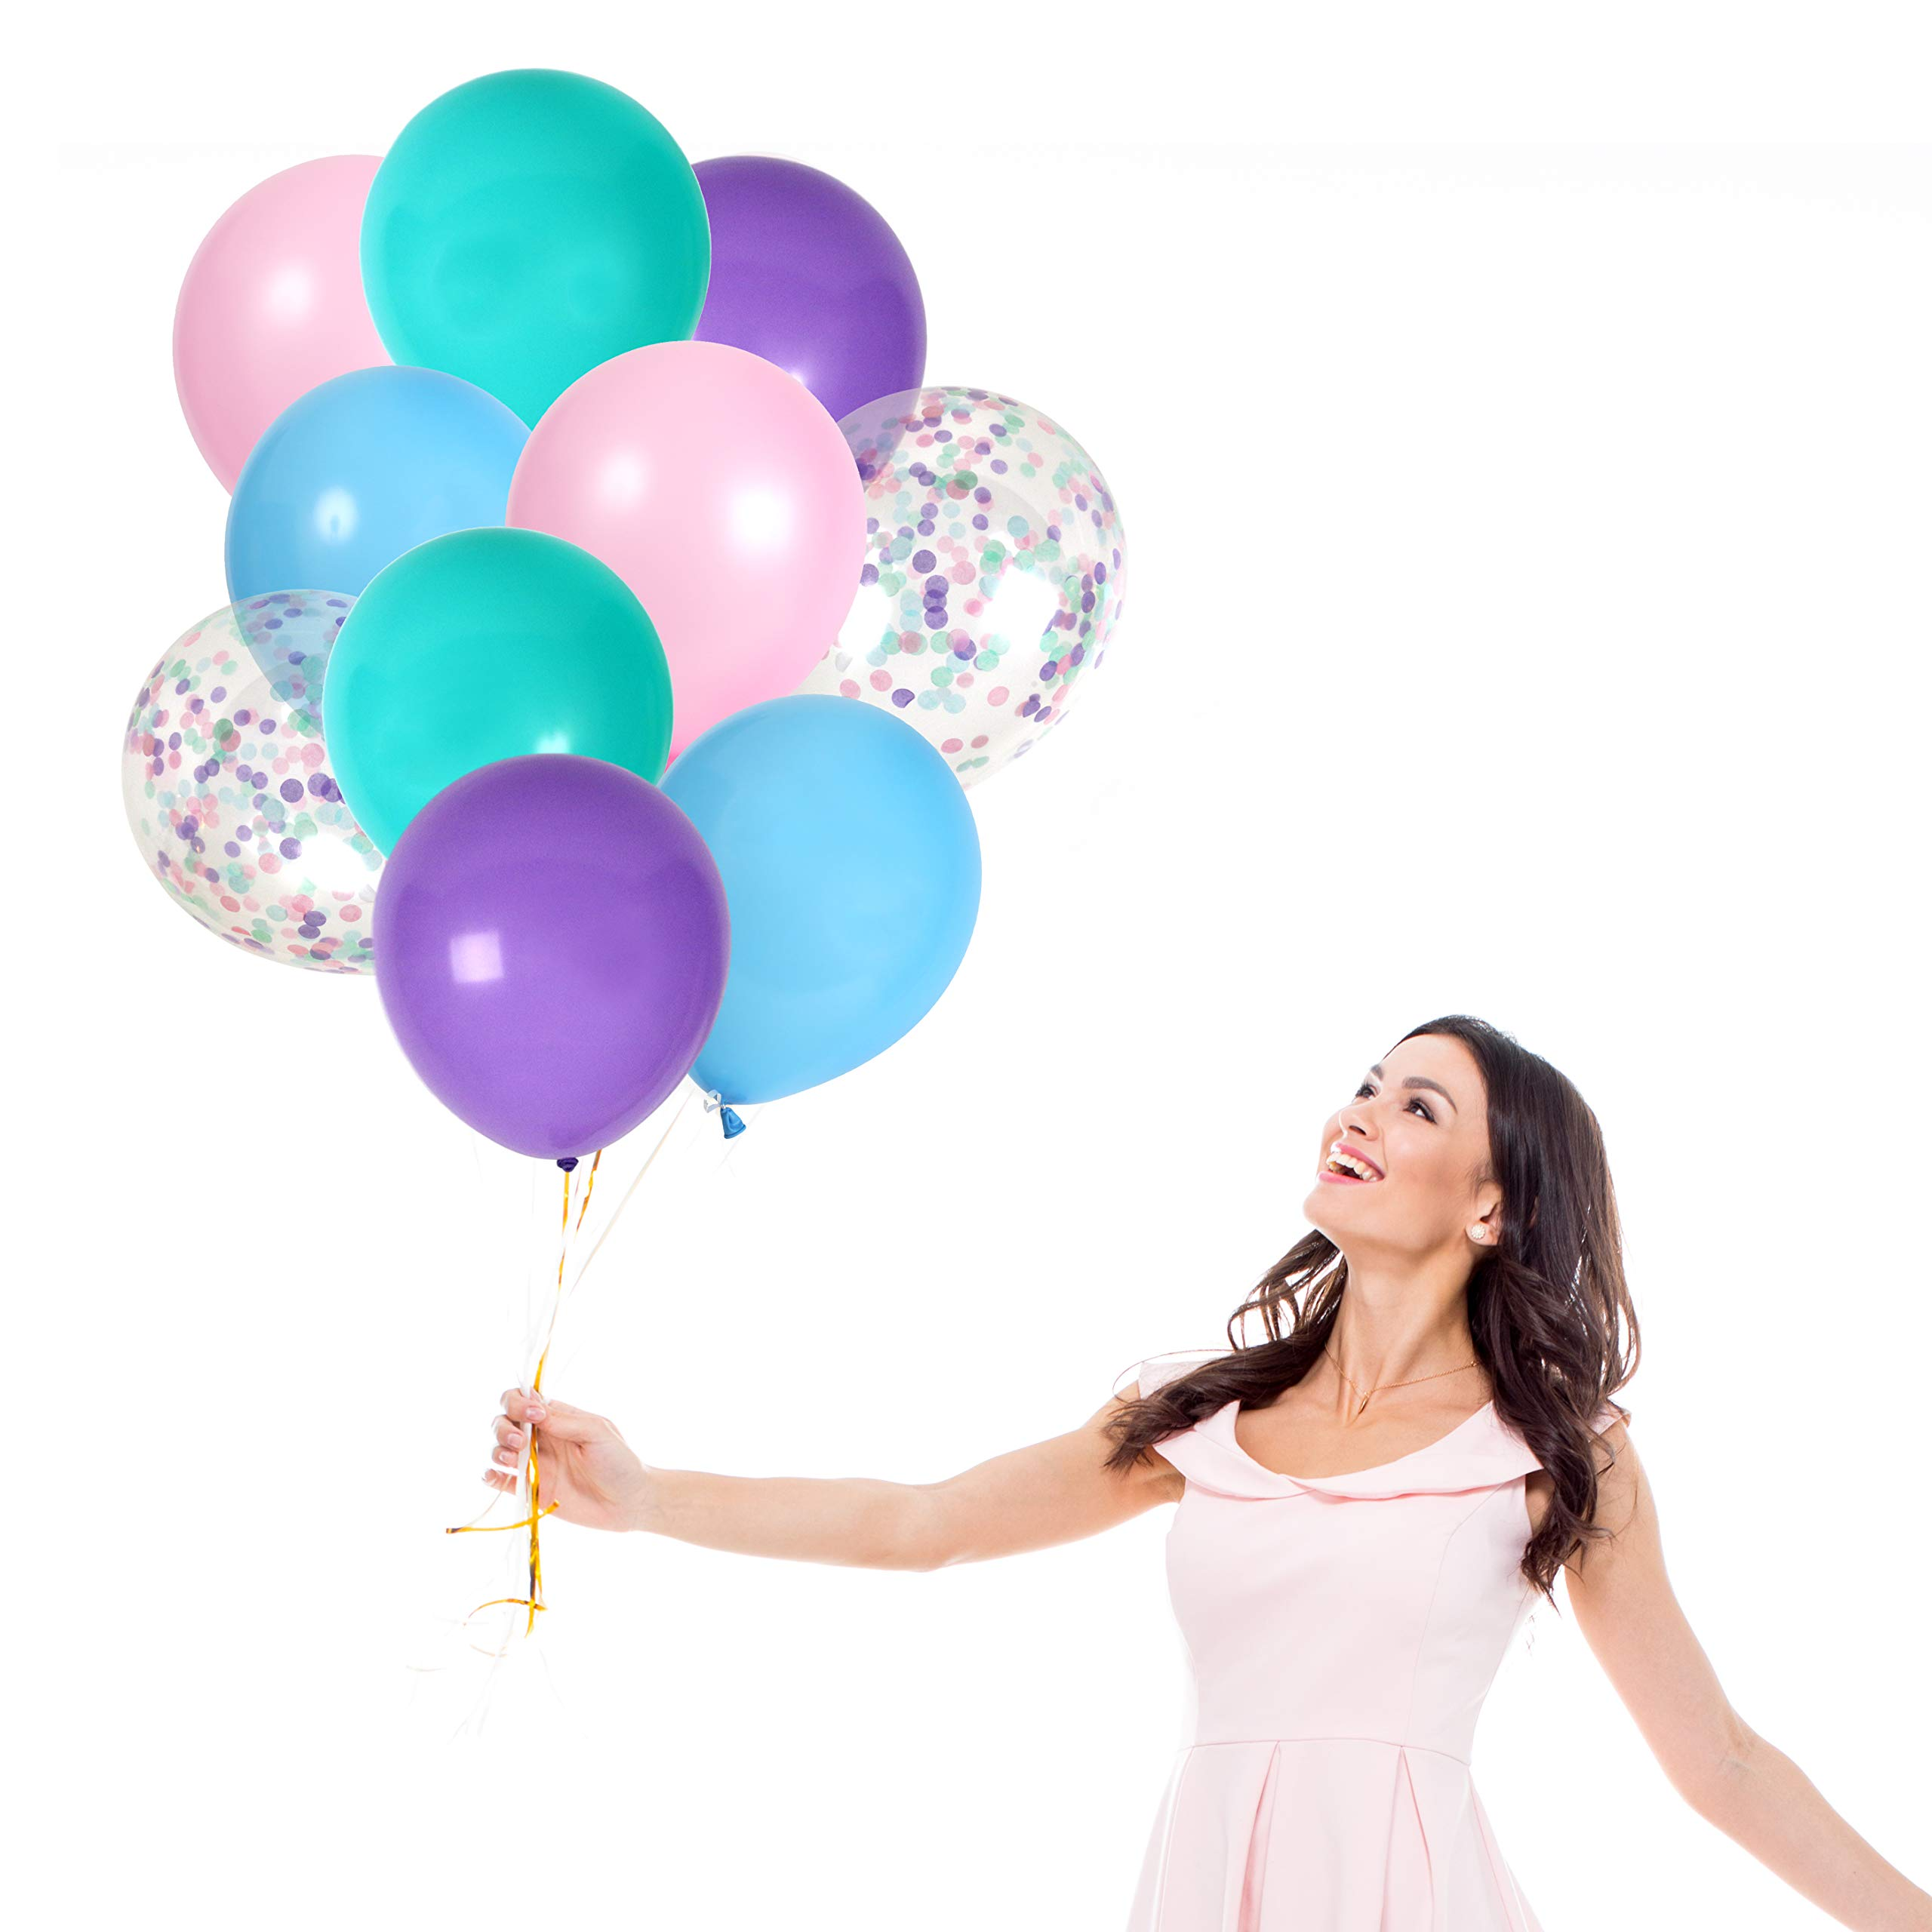 Frozen Balloons Party Decoration in Purple Pink Balloons Aqua Blue Latex Balloons Confetti Balloons for Birthday Baby Shower Supplies (42 Pack)